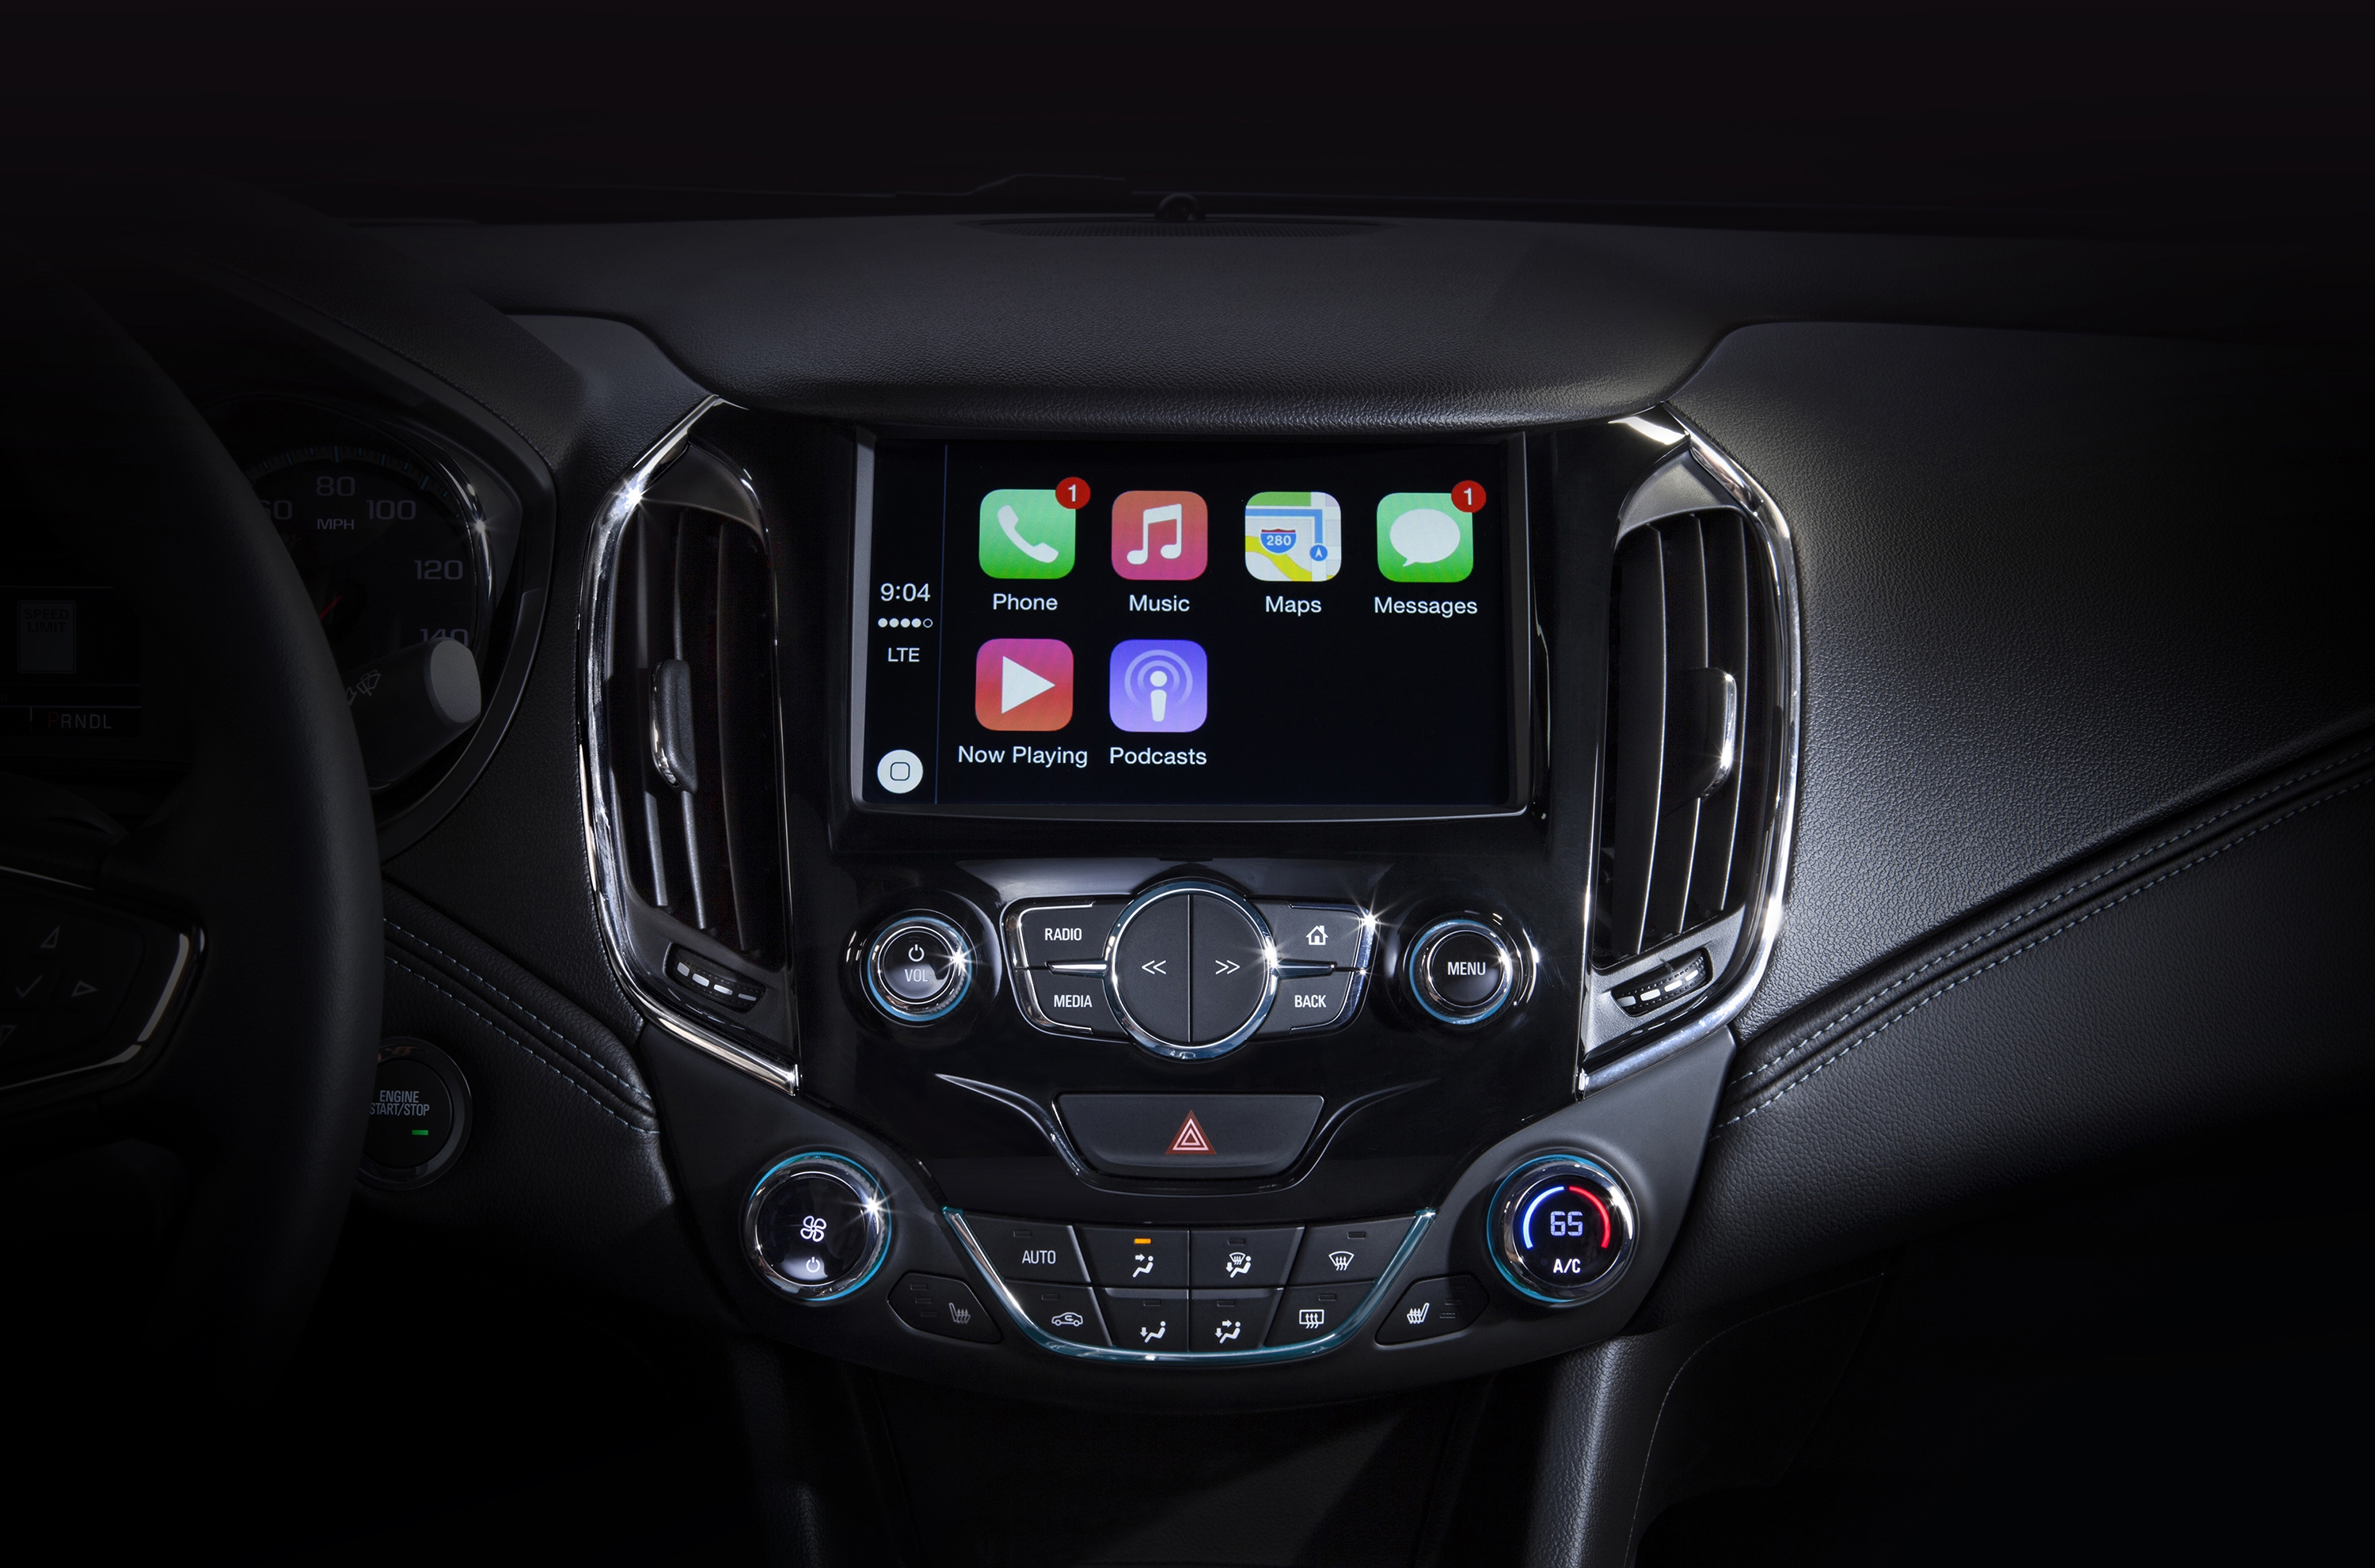 2016-Chevrolet-Cruze-Apple-CarPlay-002.jpg